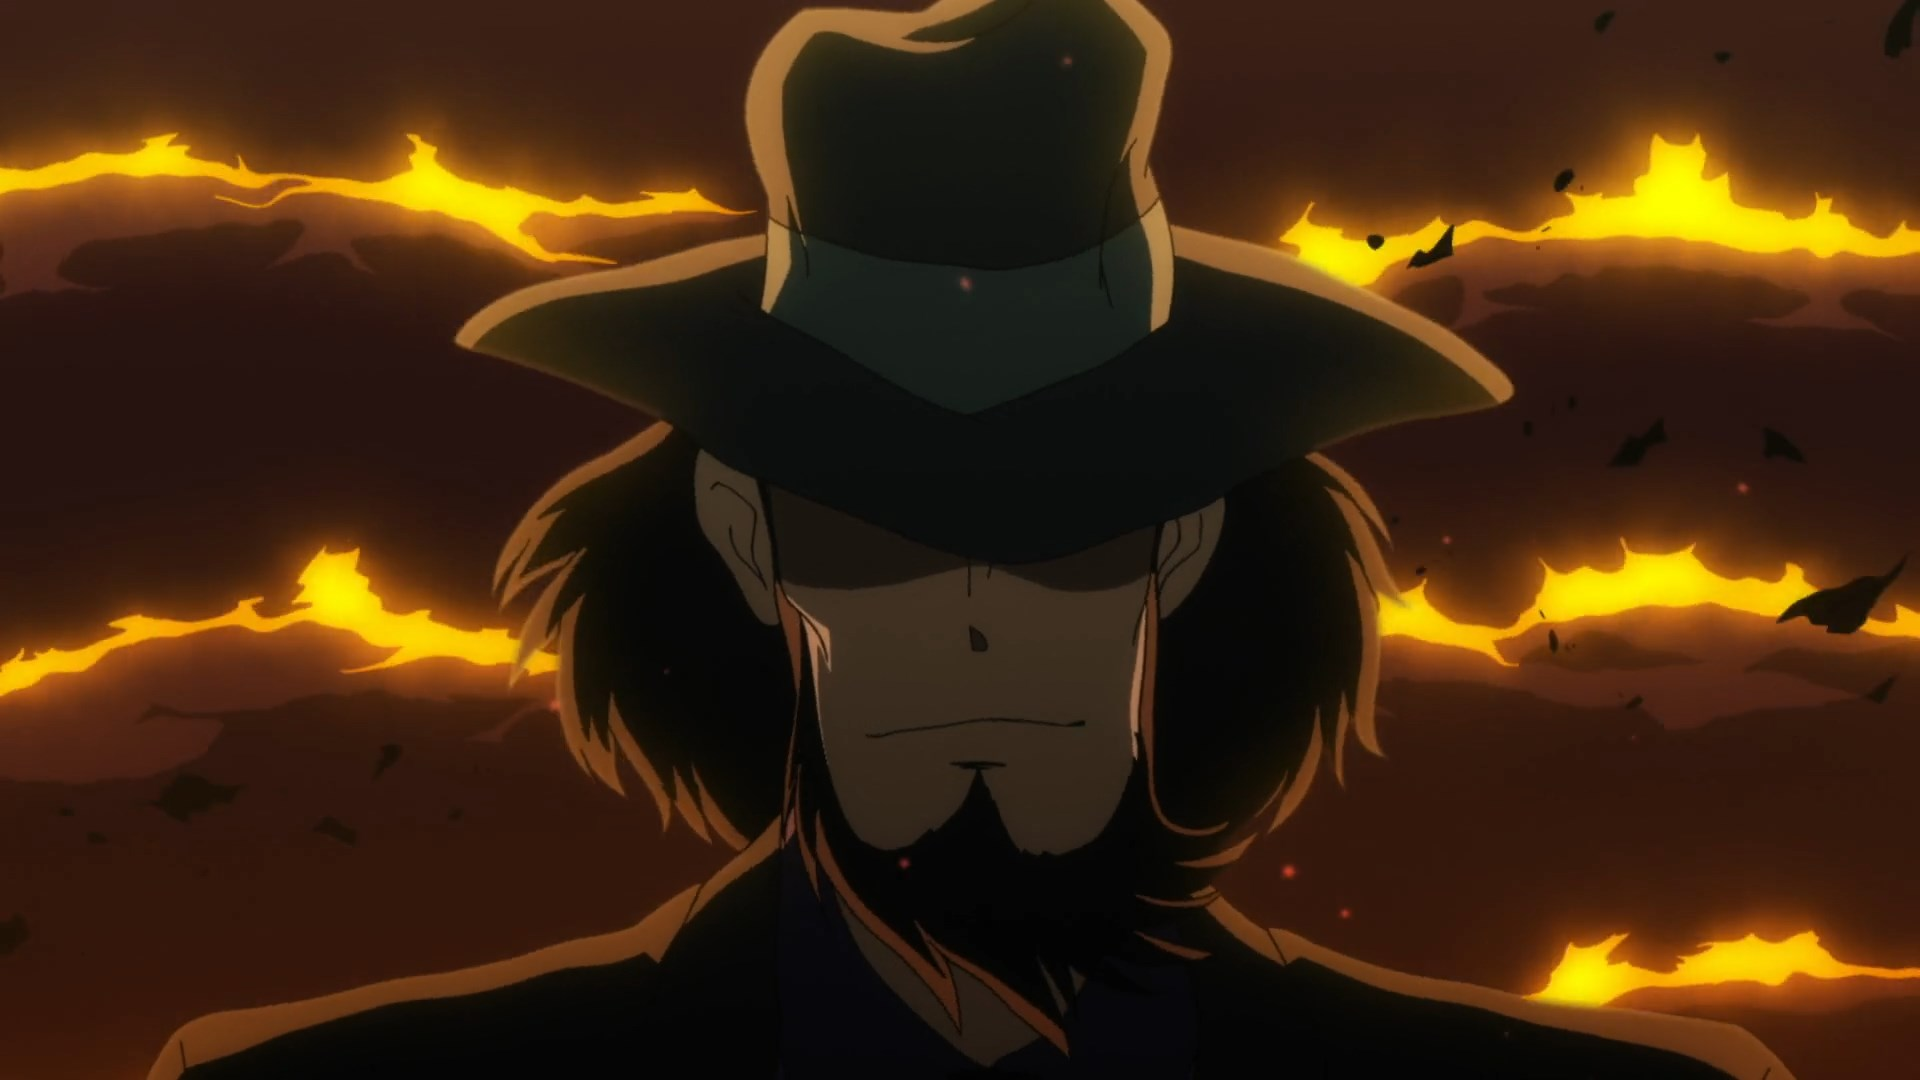 Featured image for Lupin the Third Part 6 – 00 (Farewell, Kobayashi-san #Lupin6)